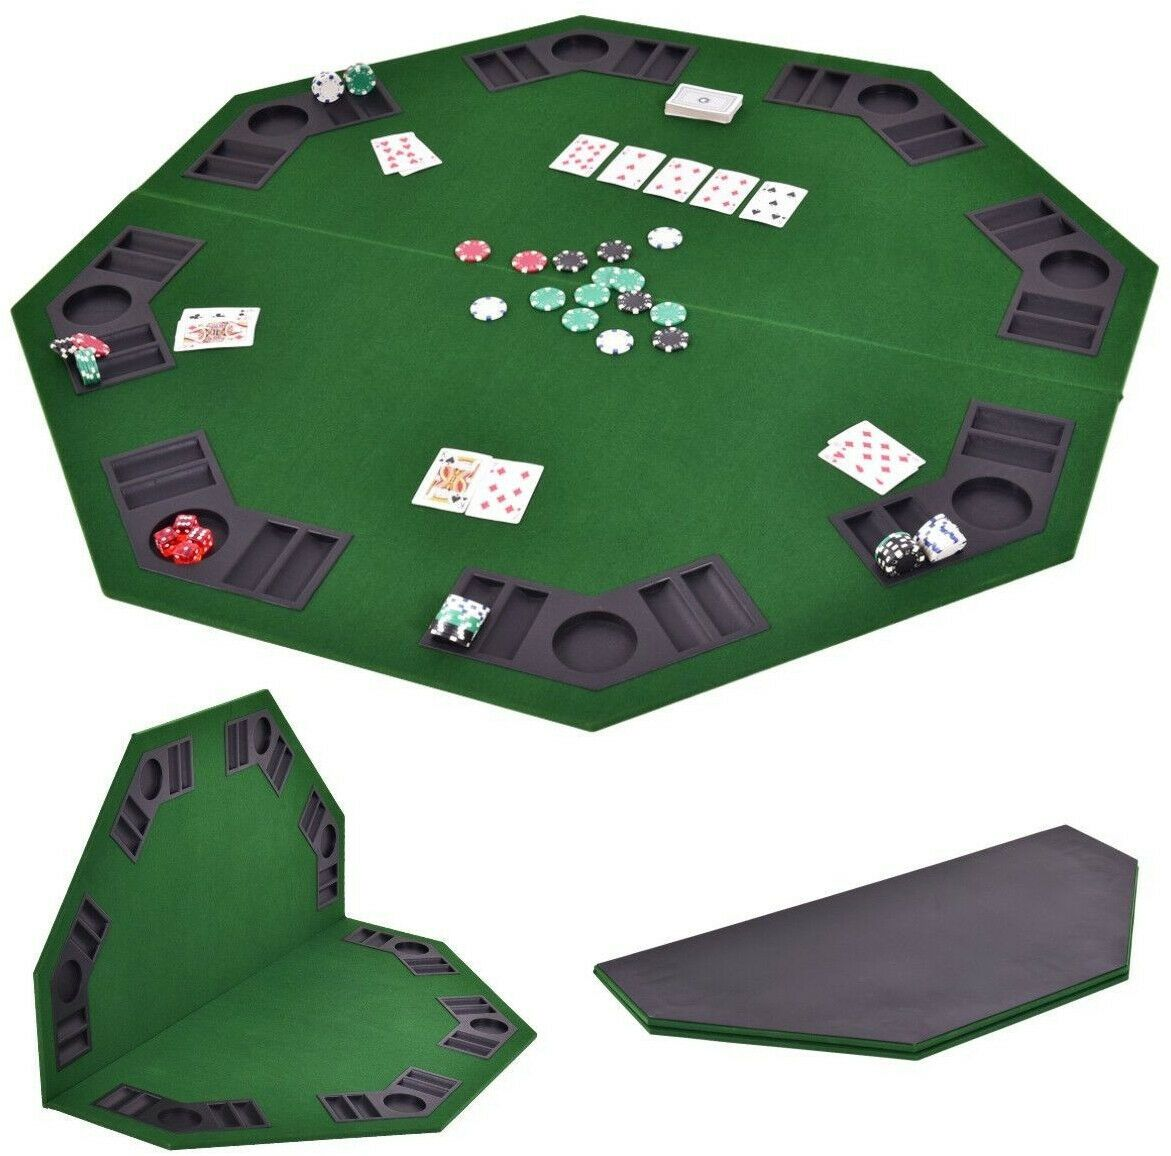 48 8 Players Octagon Foldable Poker Table Top Poker Table Top Folding Poker Table Poker Table